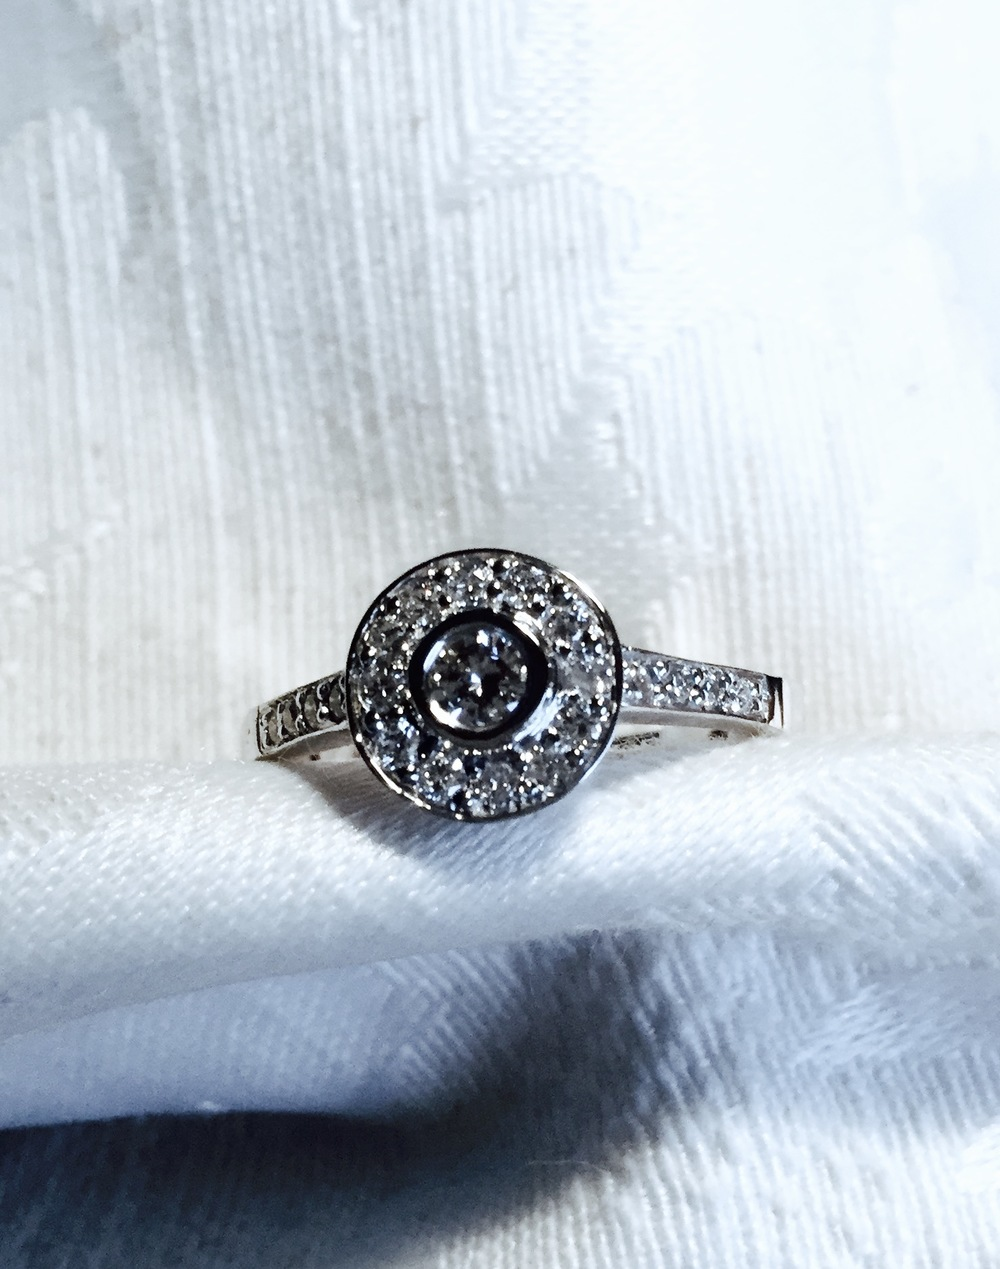 Original Engagement ring round stone reset into halo